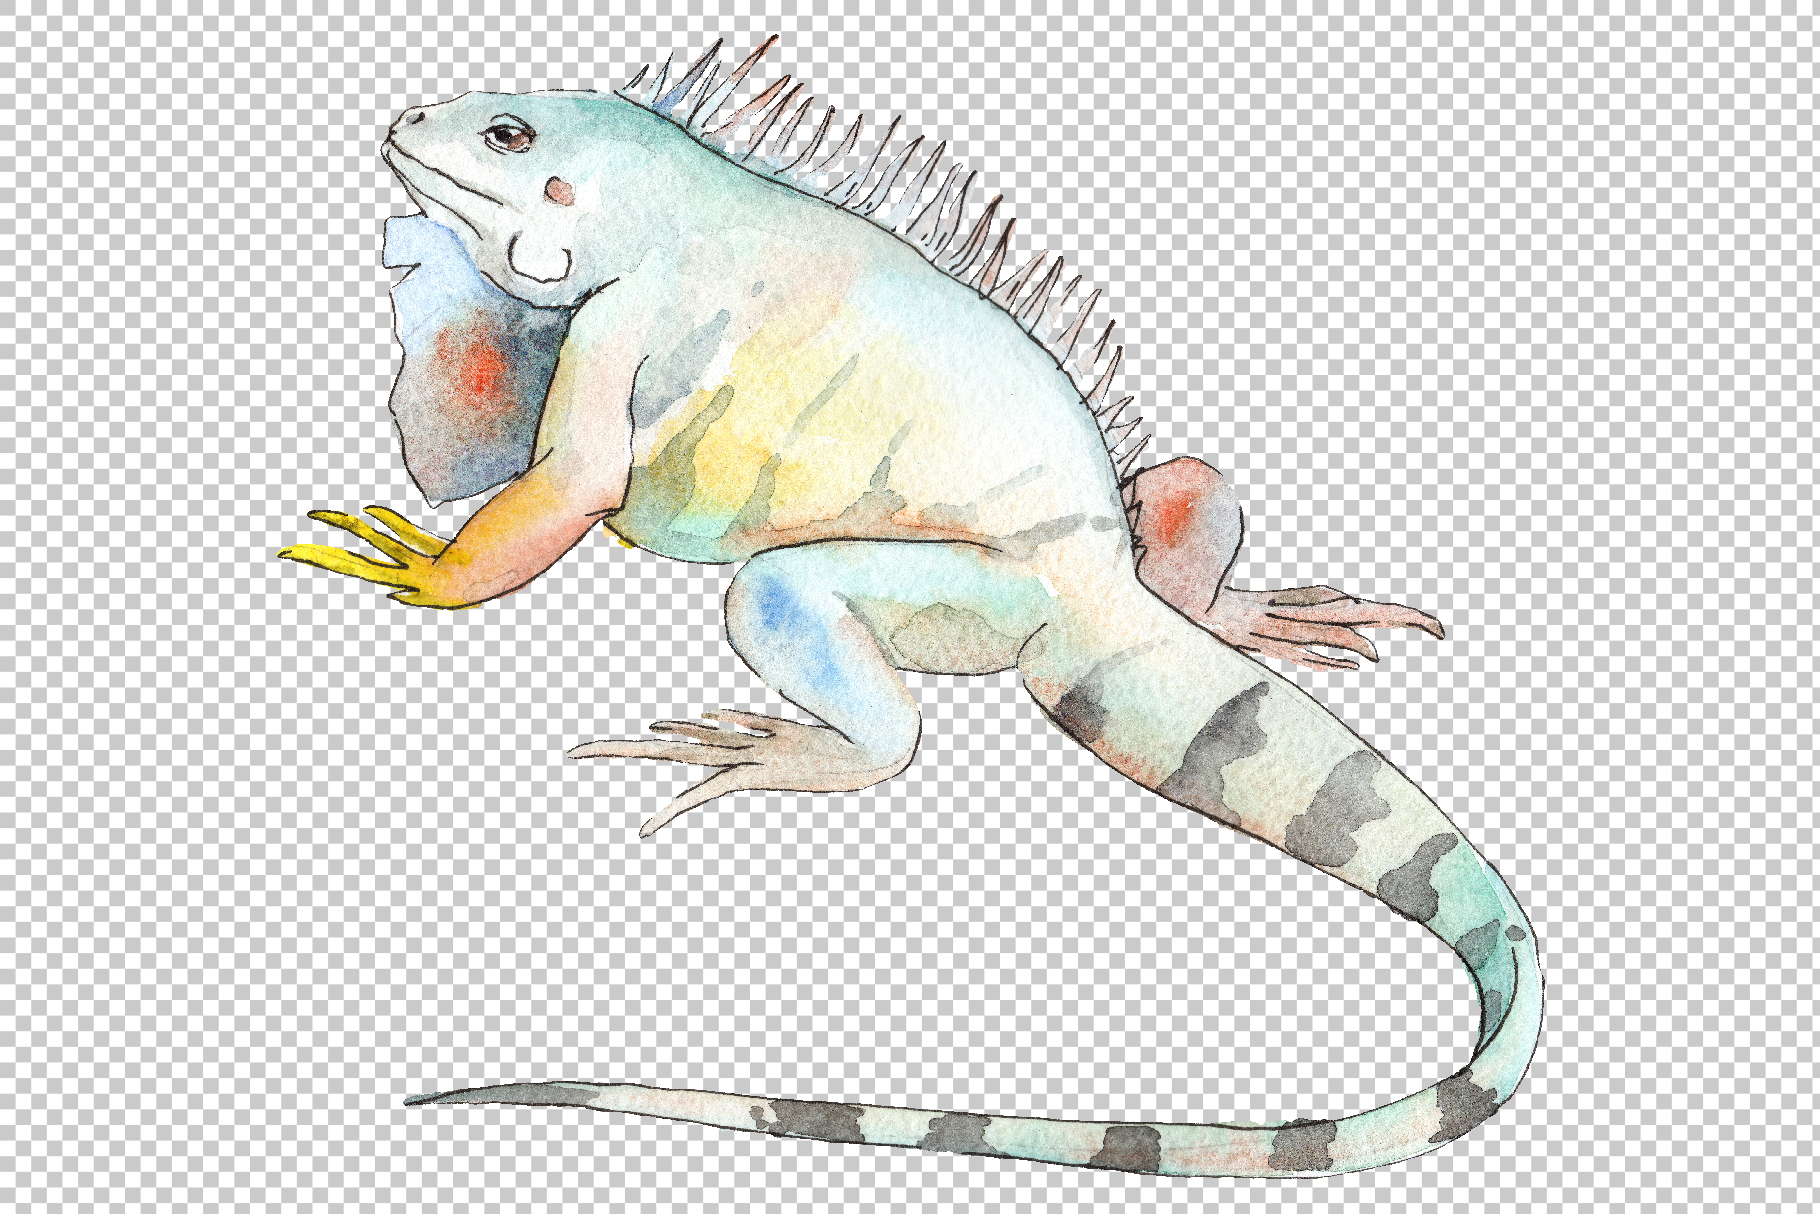 Iguana-1 Watercolor png example image 5